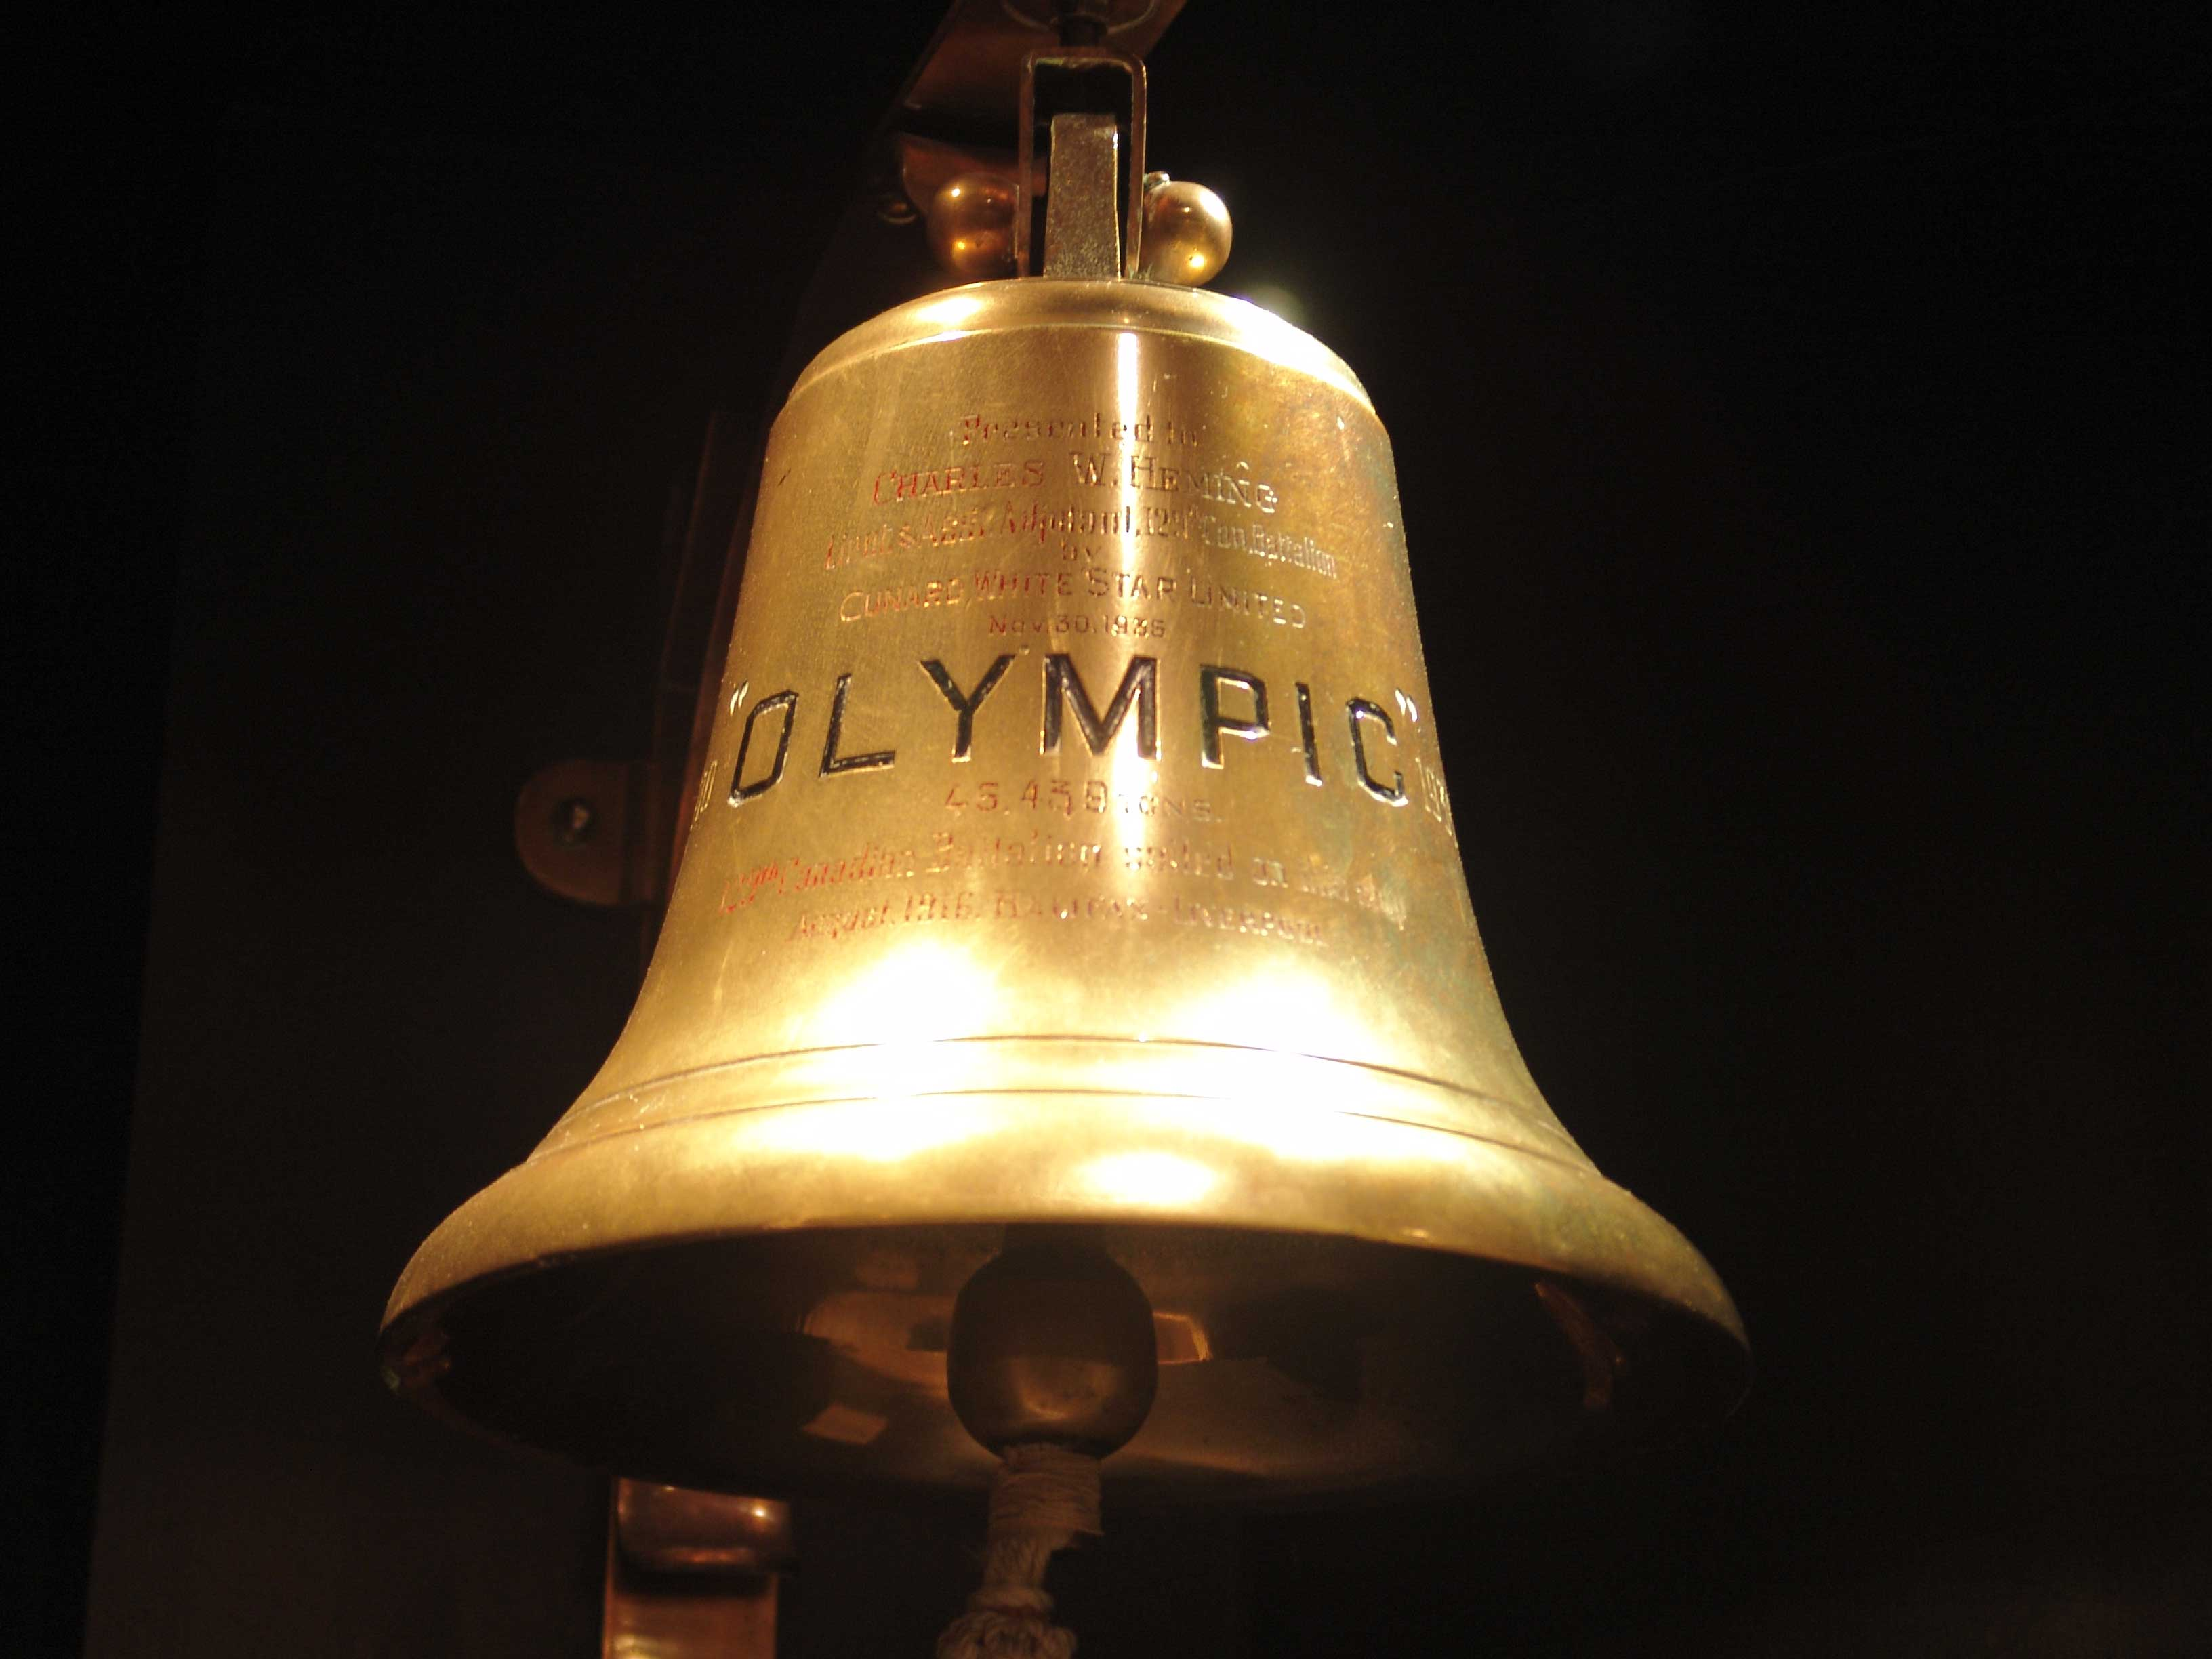 A brass bell inscribed with the word Olympic